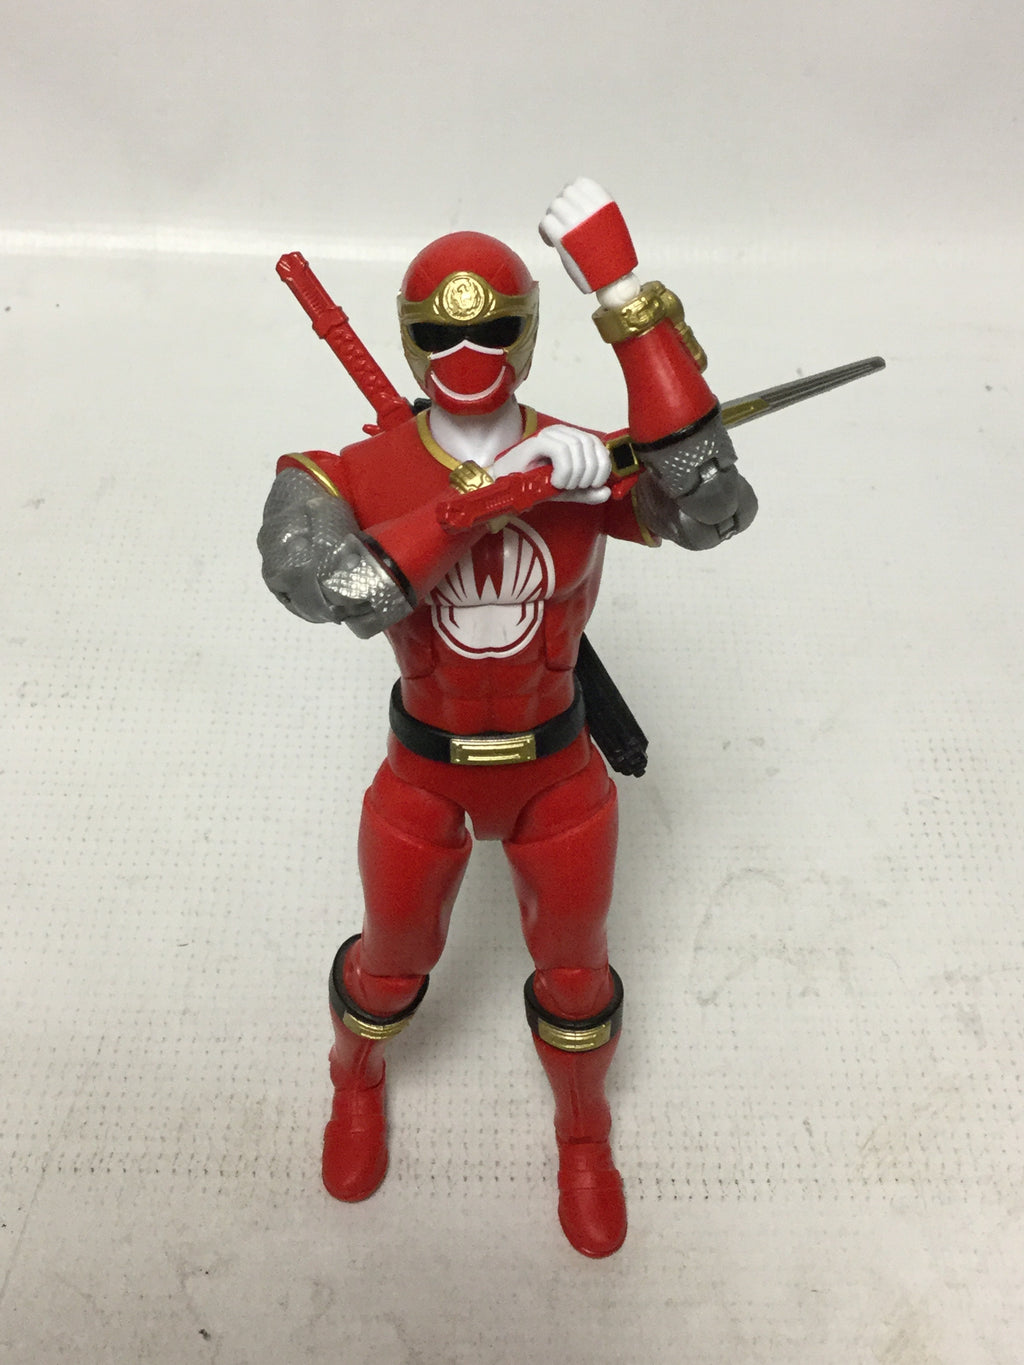 Bandai Power Ranger Ninjastorm Red Ranger